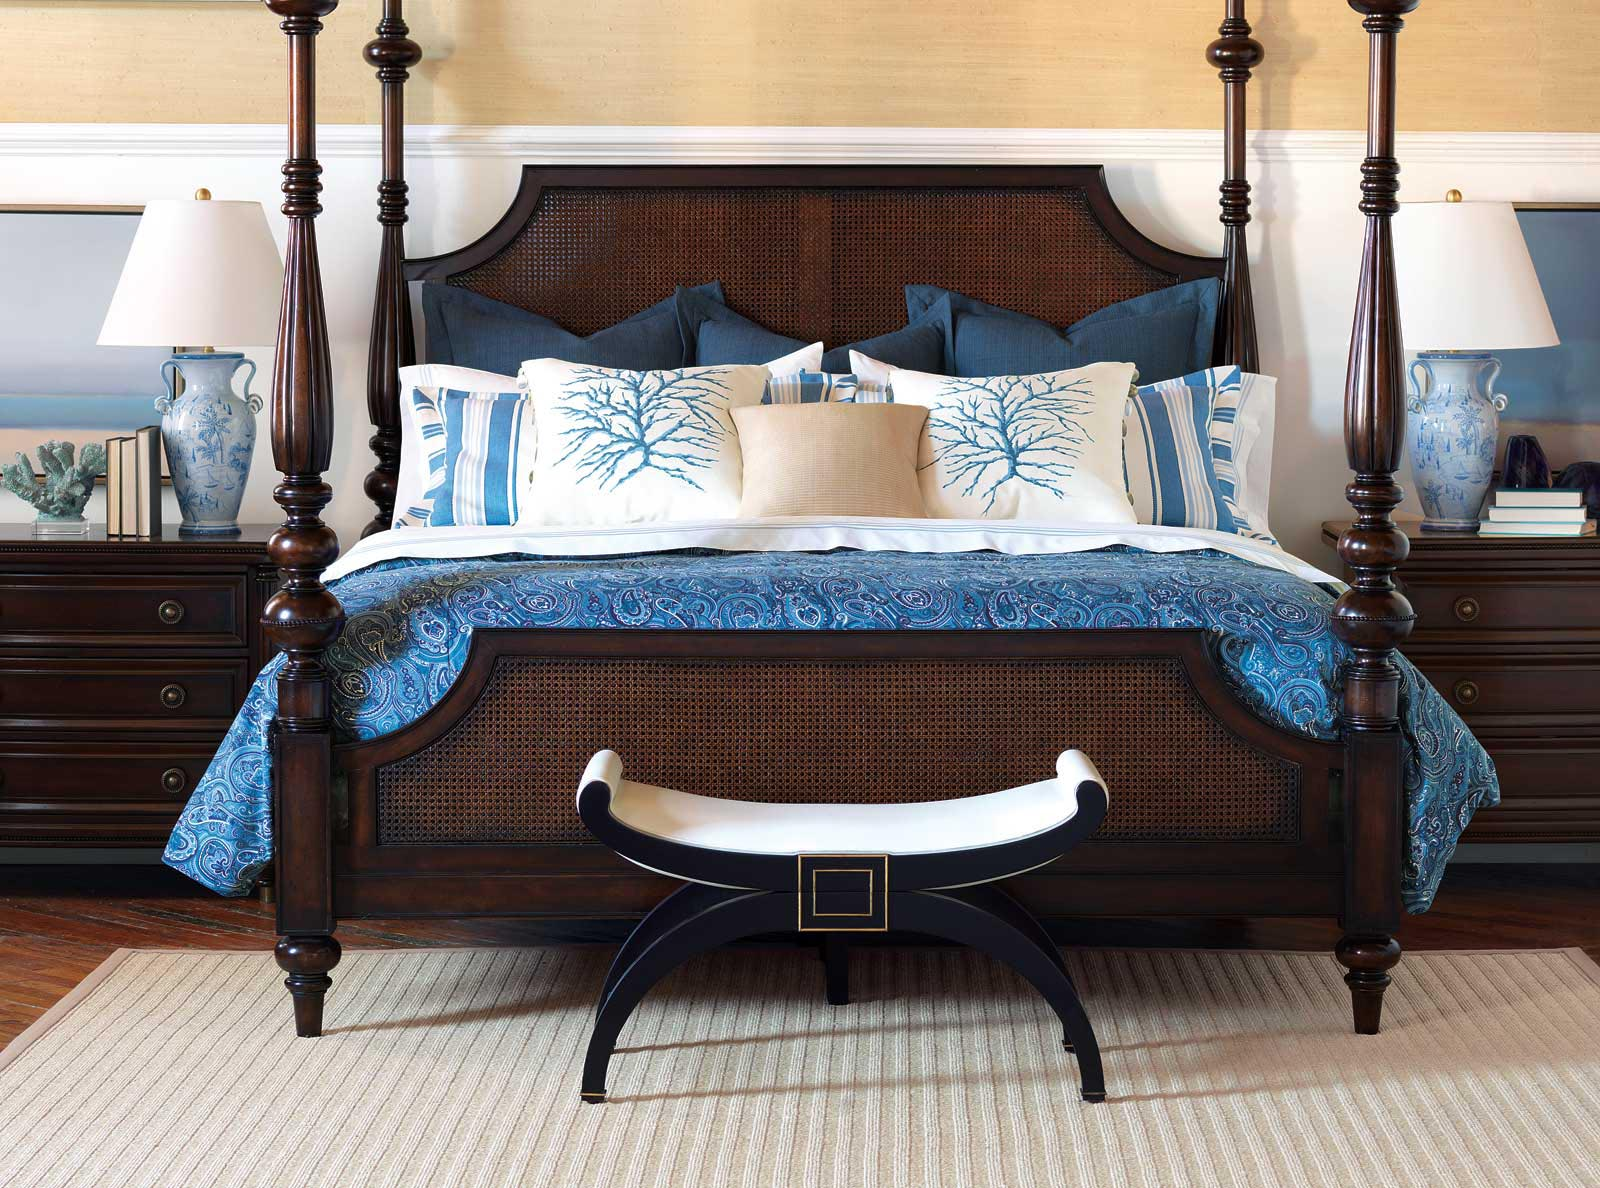 Nautical bedroom furniture ideas homesfeed for Bedroom furniture ideas